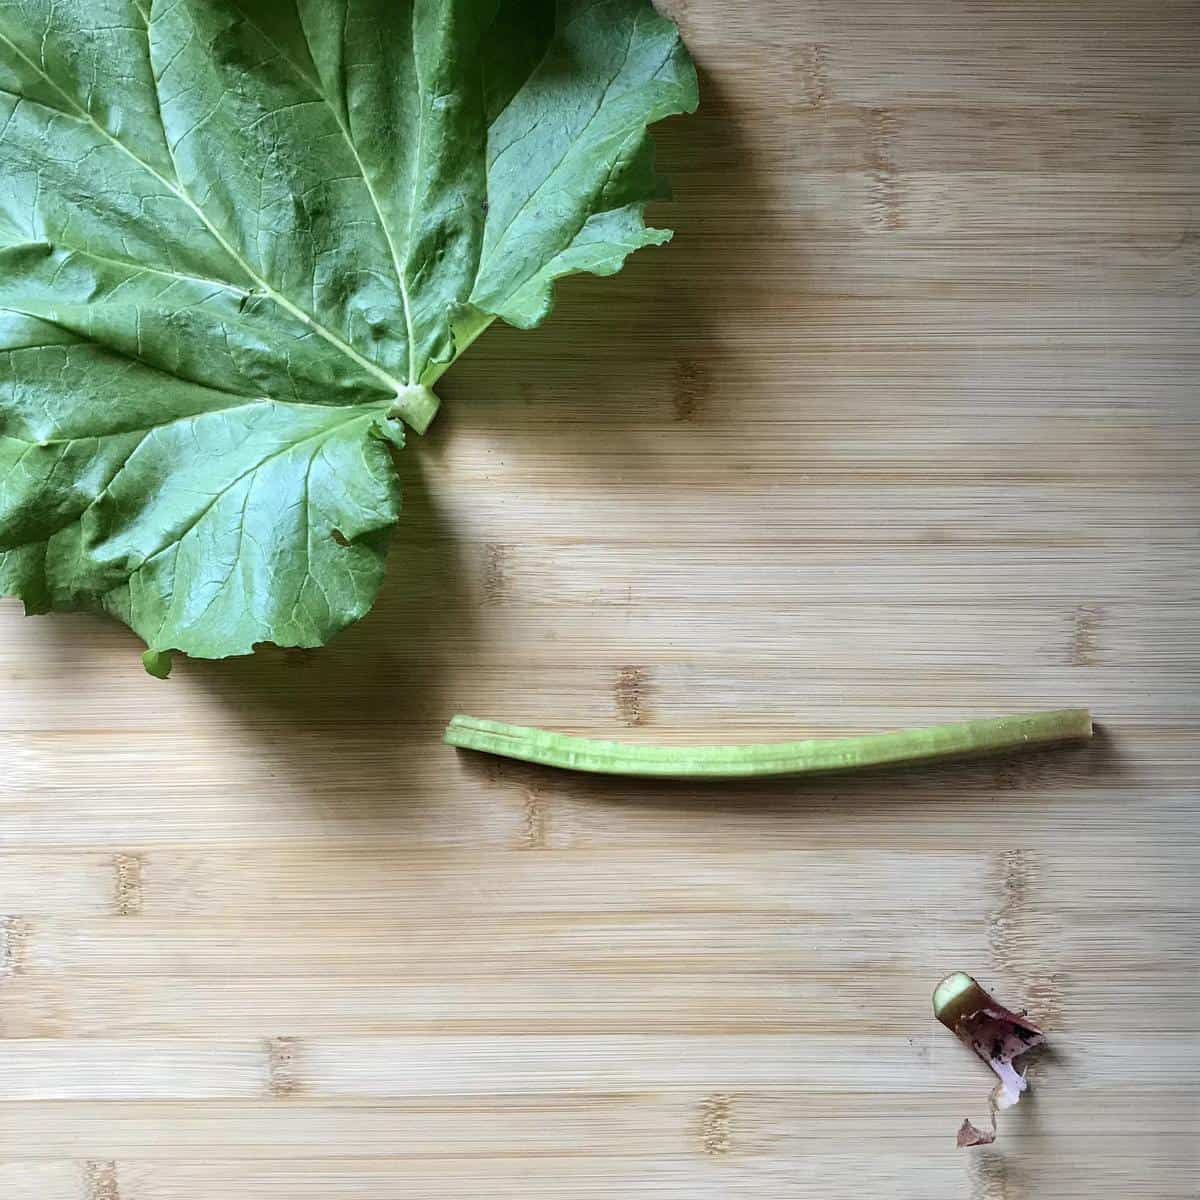 The leaf and root are cut off from the rhubarb stalk.